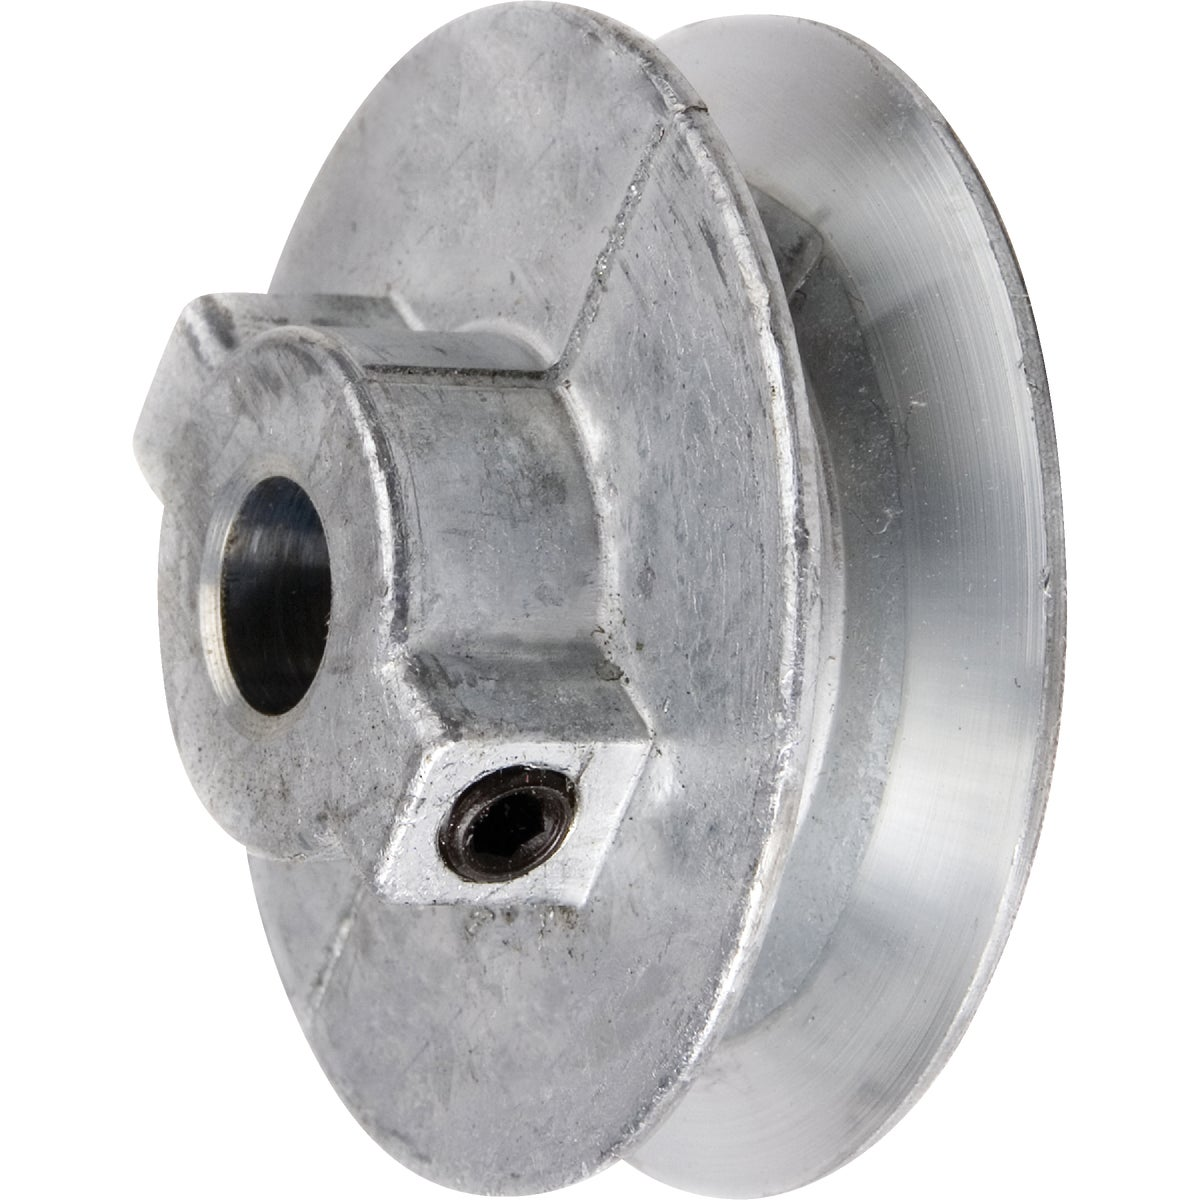 2-1/2X3/4 PULLEY - 250A7 by Chicago Die Casting